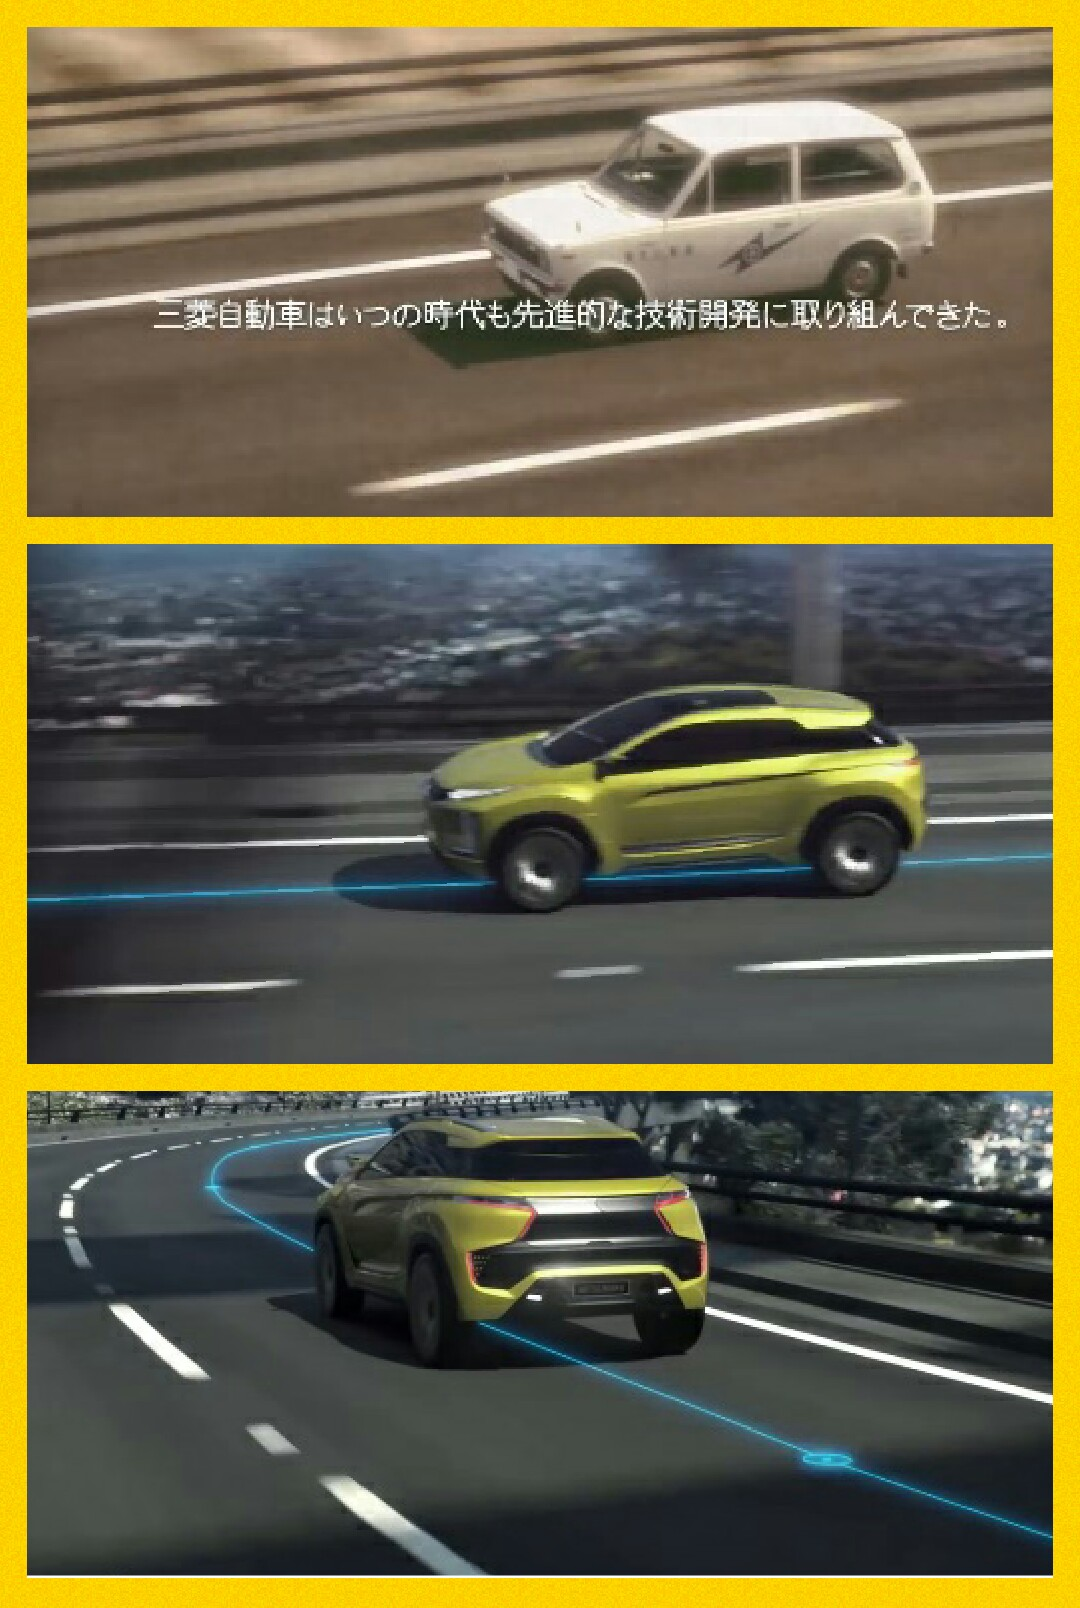 MITSUBISHI conect 三菱 コネクト eXconcept